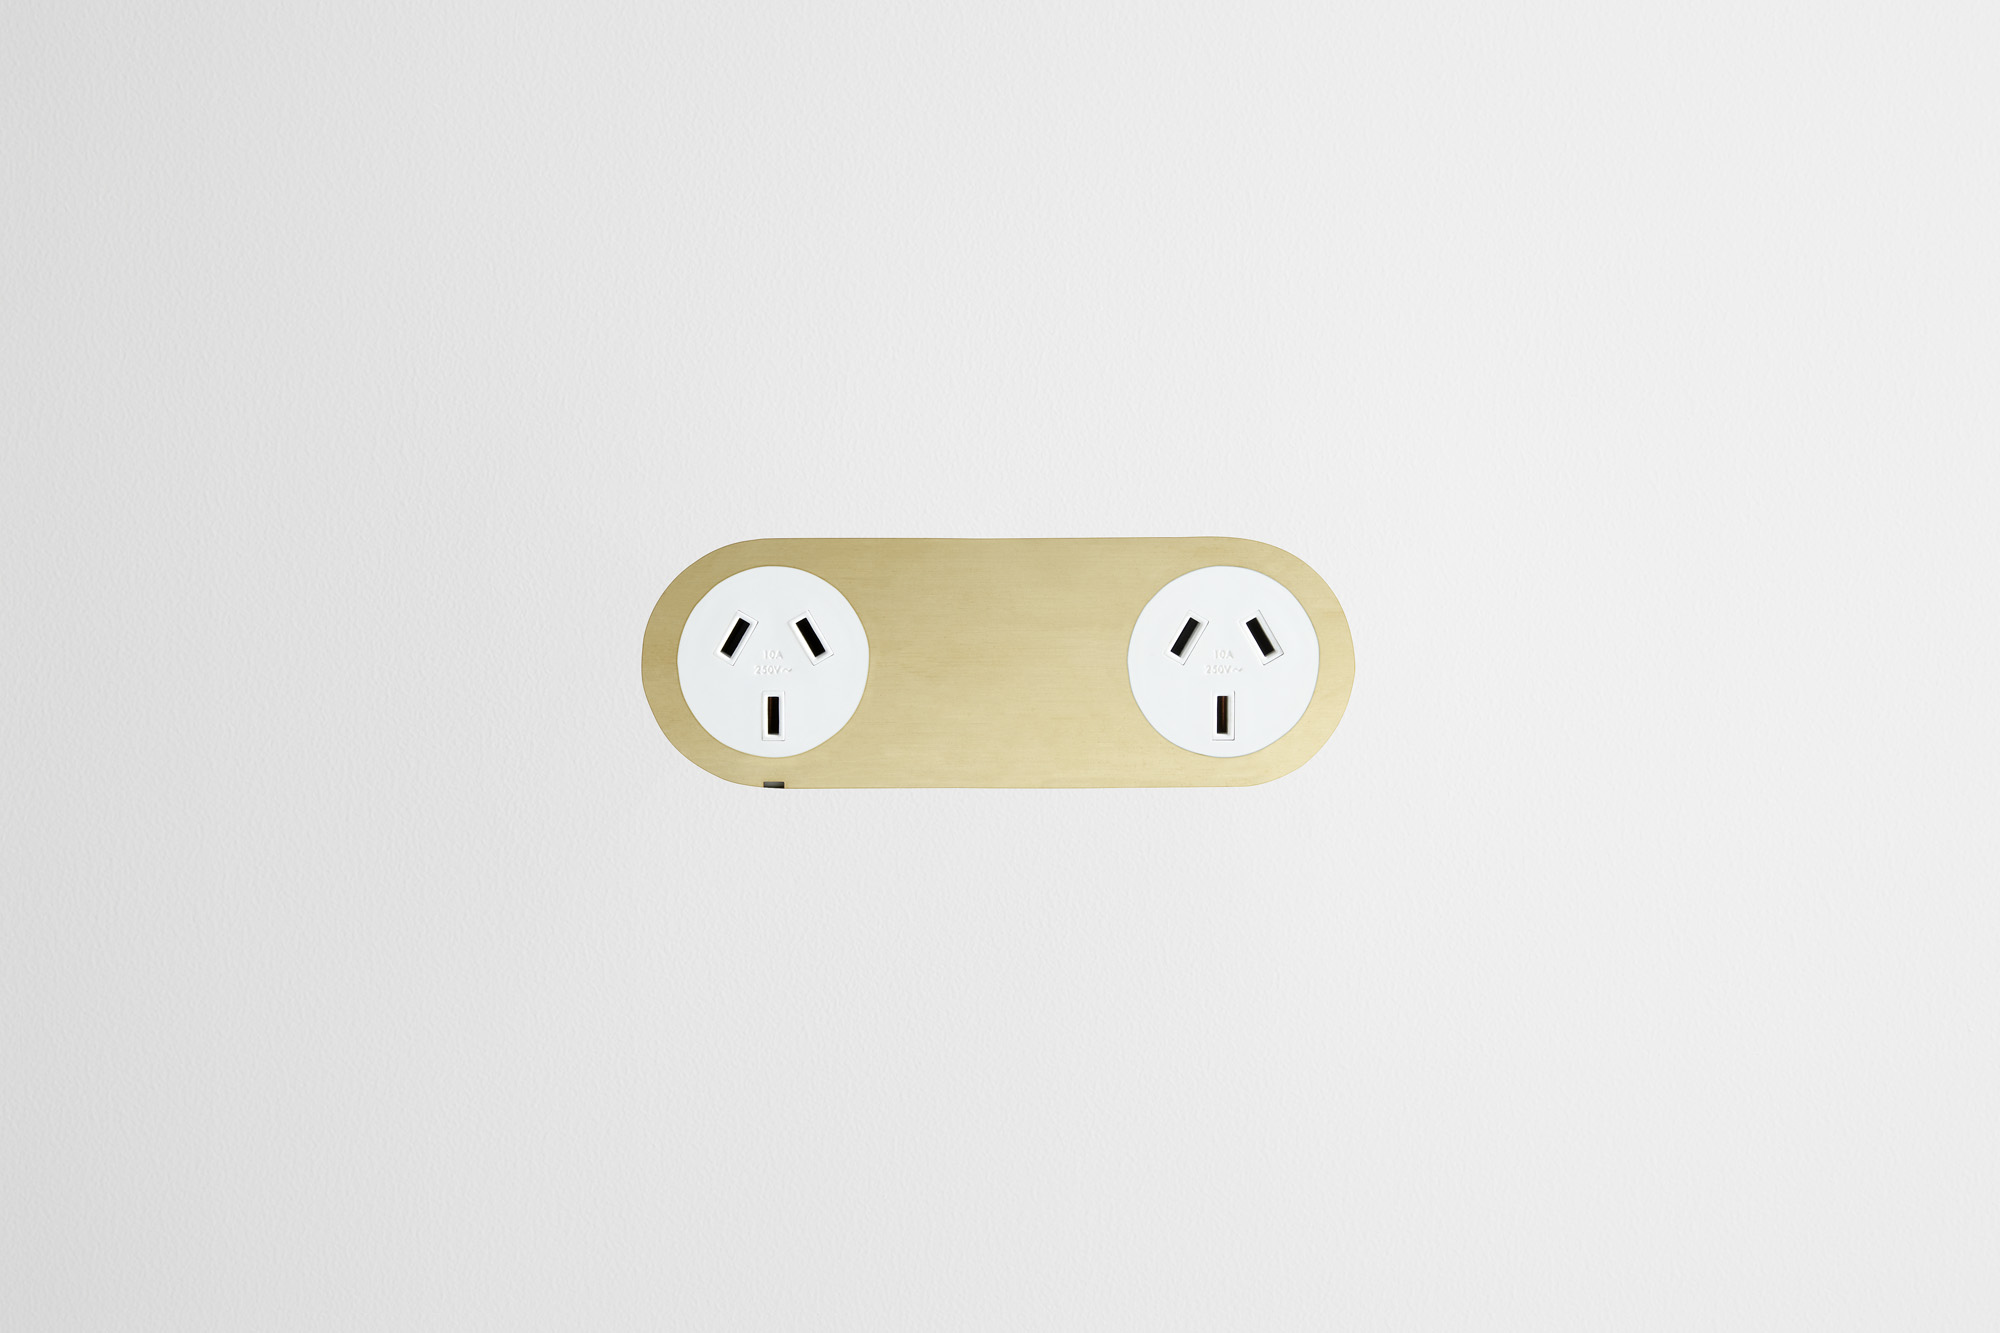 Double_Outlet_Brass_White_Outlet_White_Board.jpg